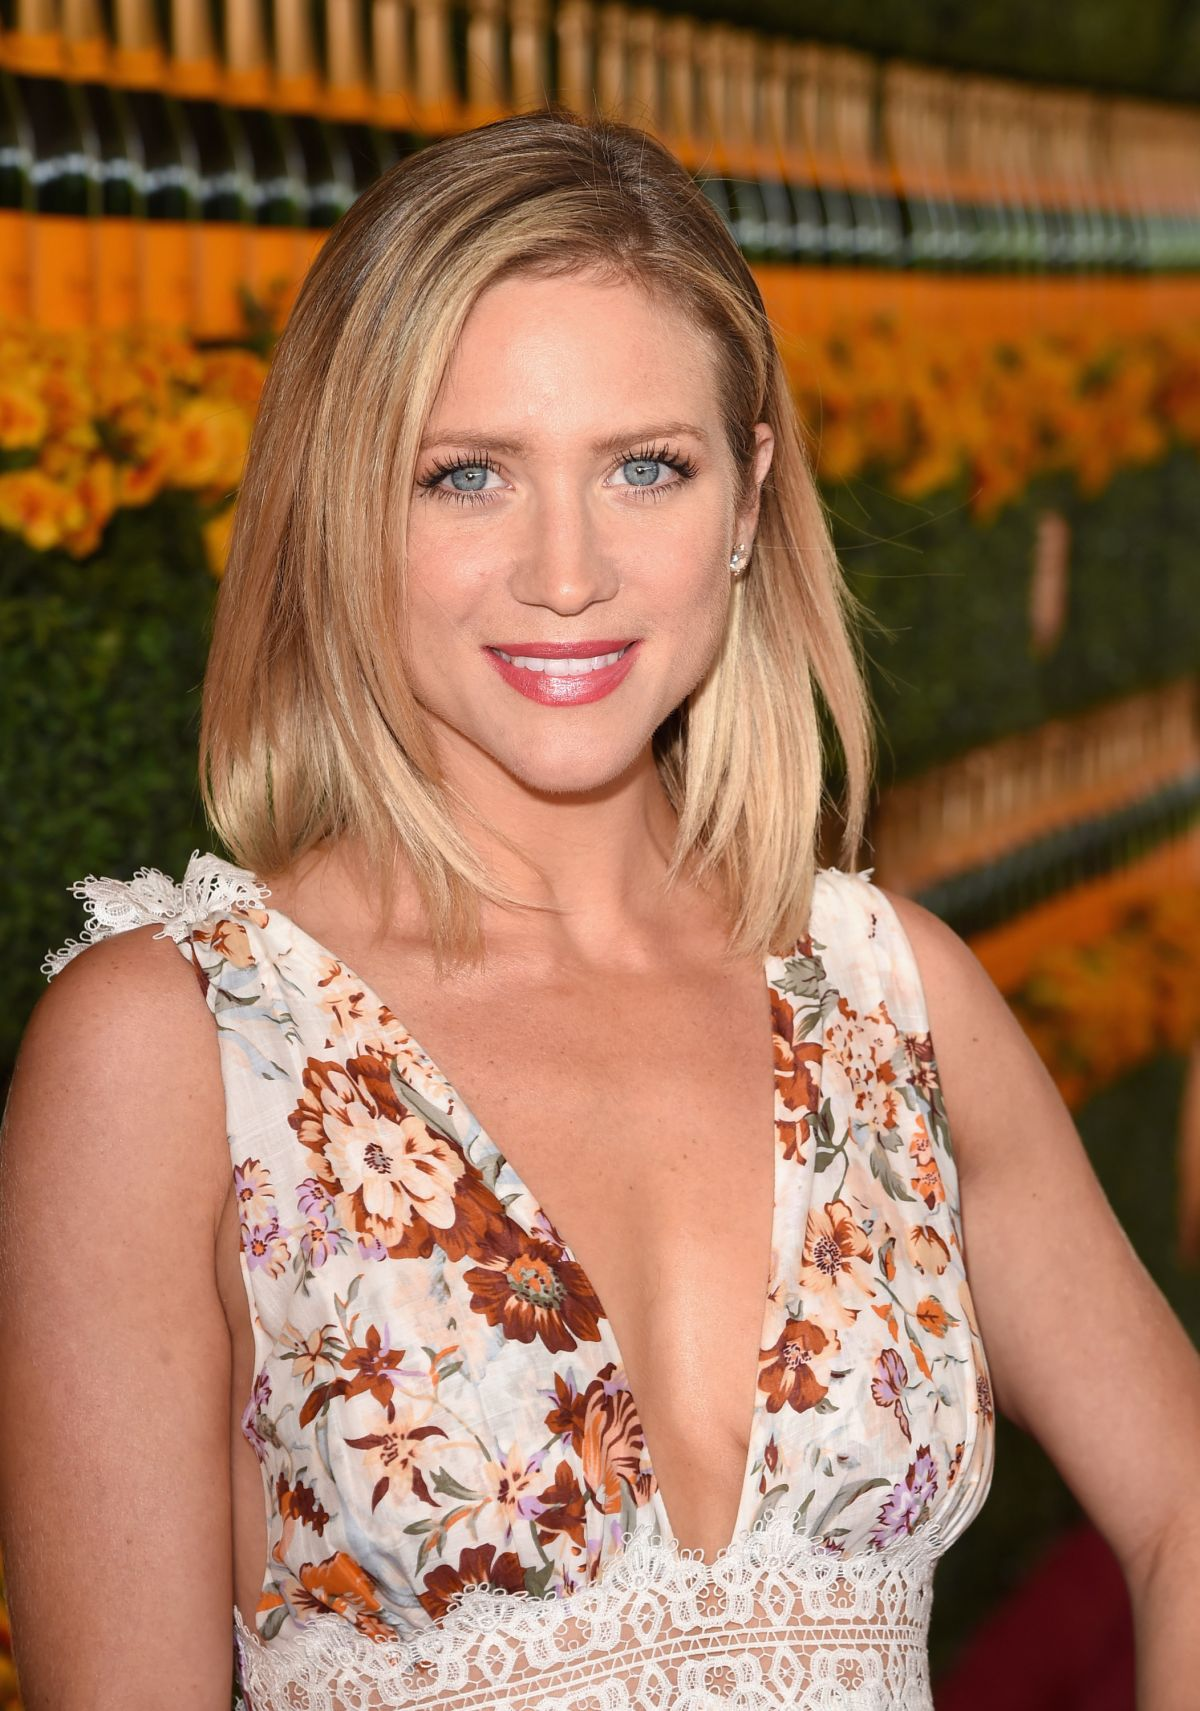 Naked Pics Of Brittany Snow